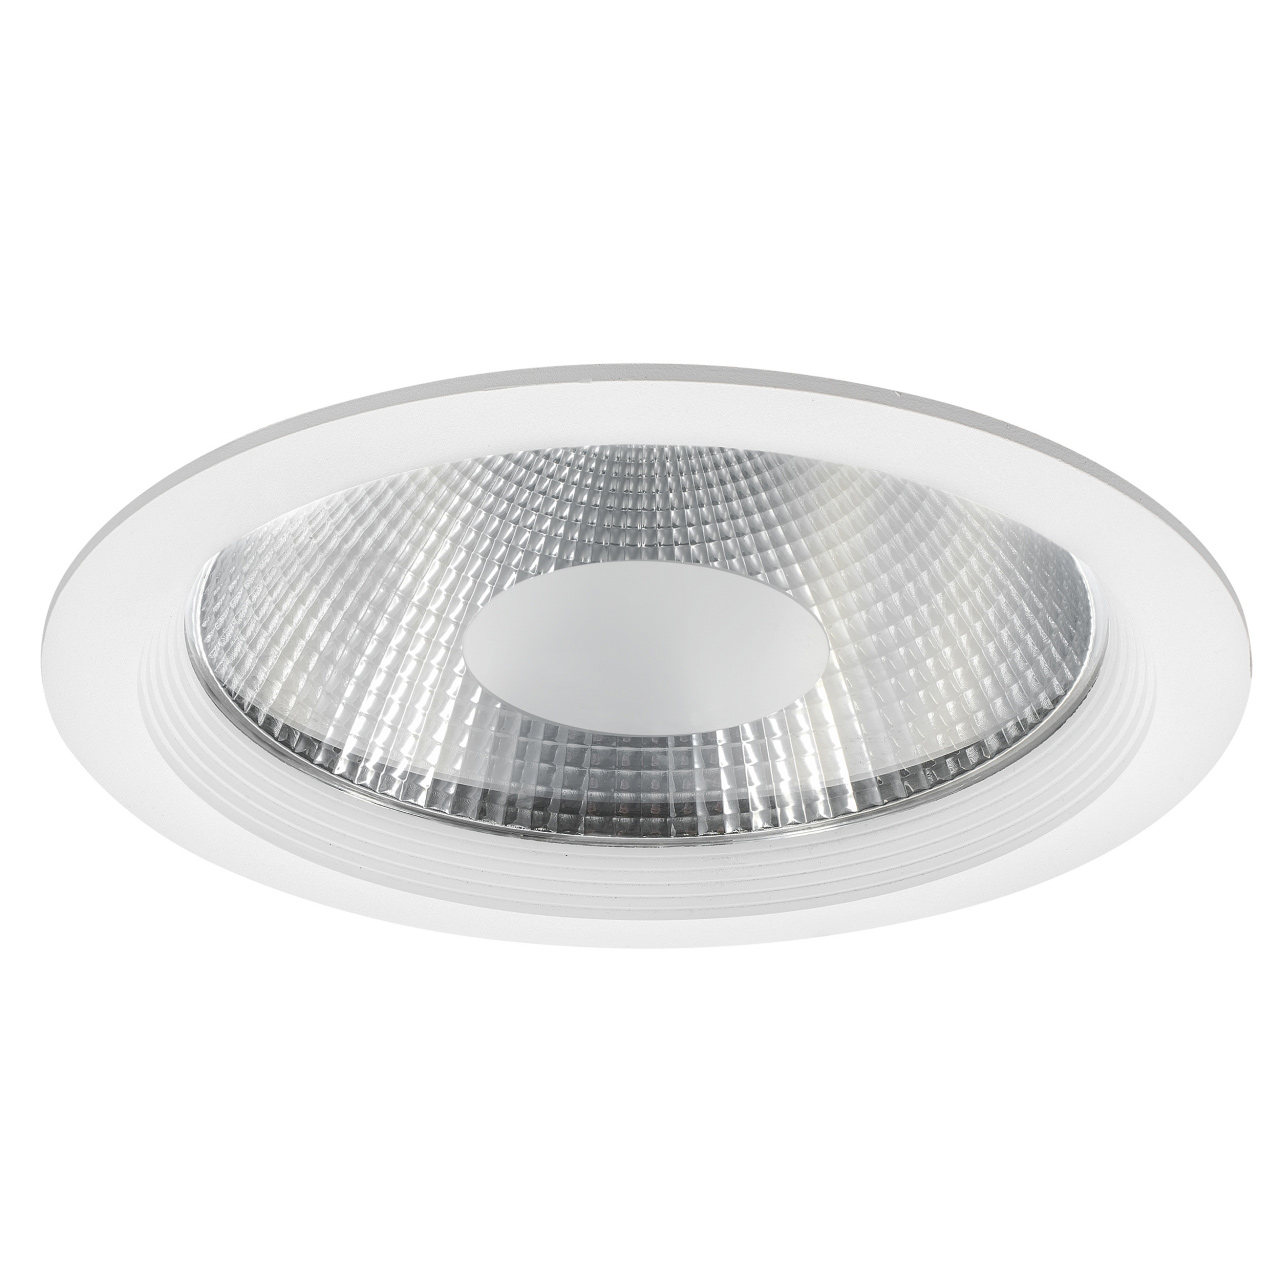 Светильник Forto LED 40W 3600LM 120G 4000K Lightstar 223404